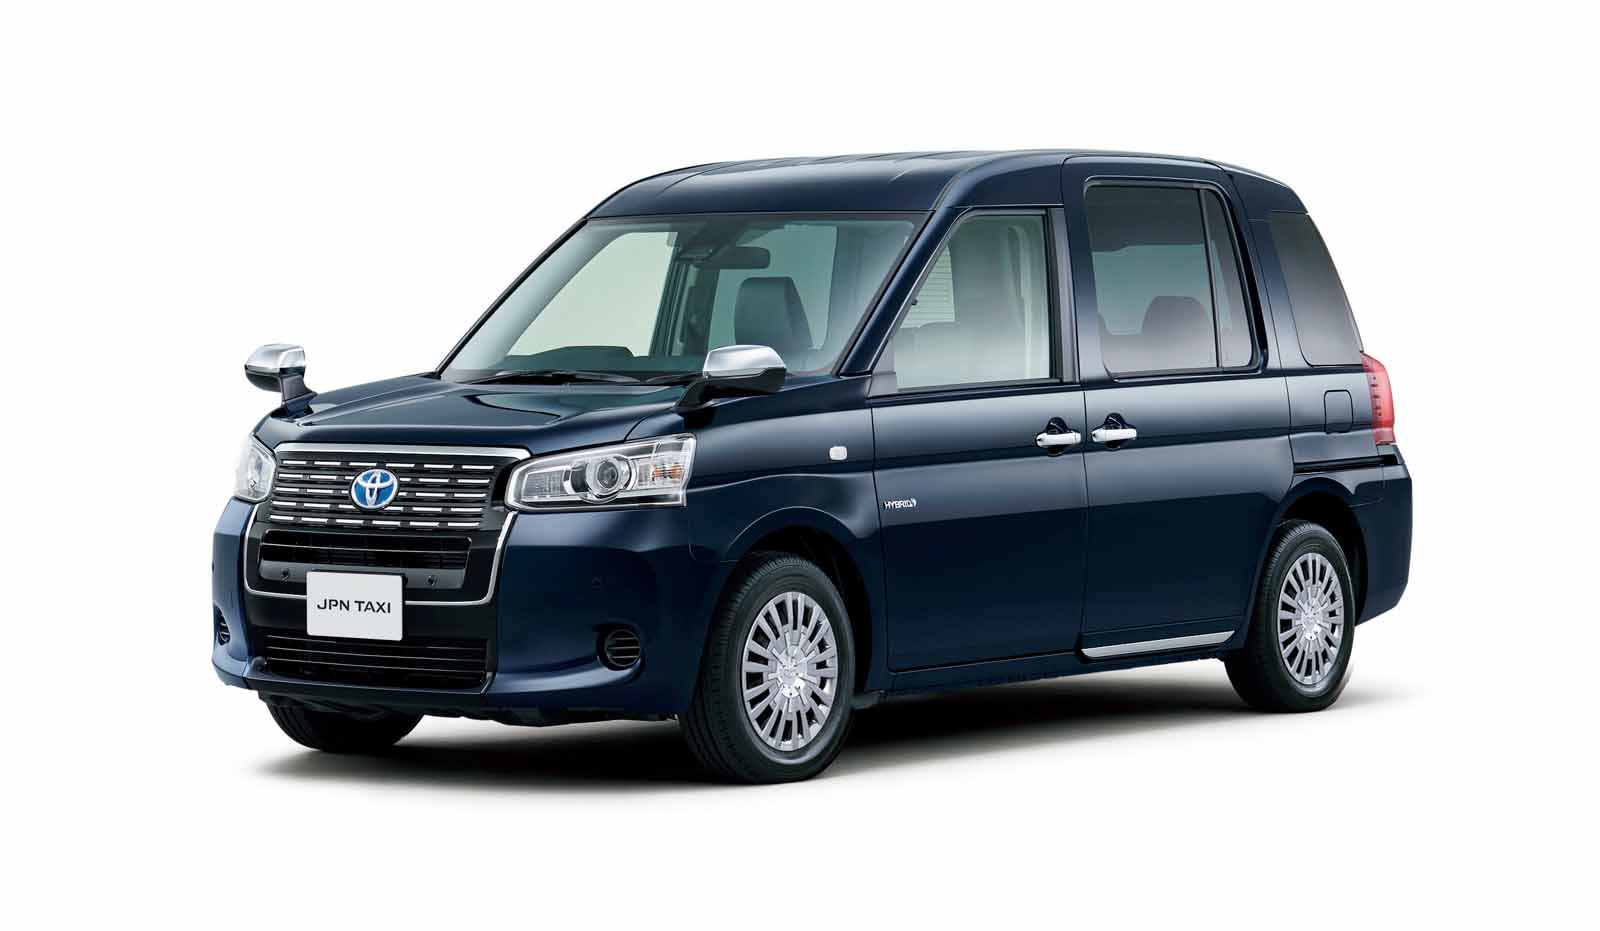 New Toyota JPN Taxi Ready To Shuttle Fares Under Hybrid LPG Power